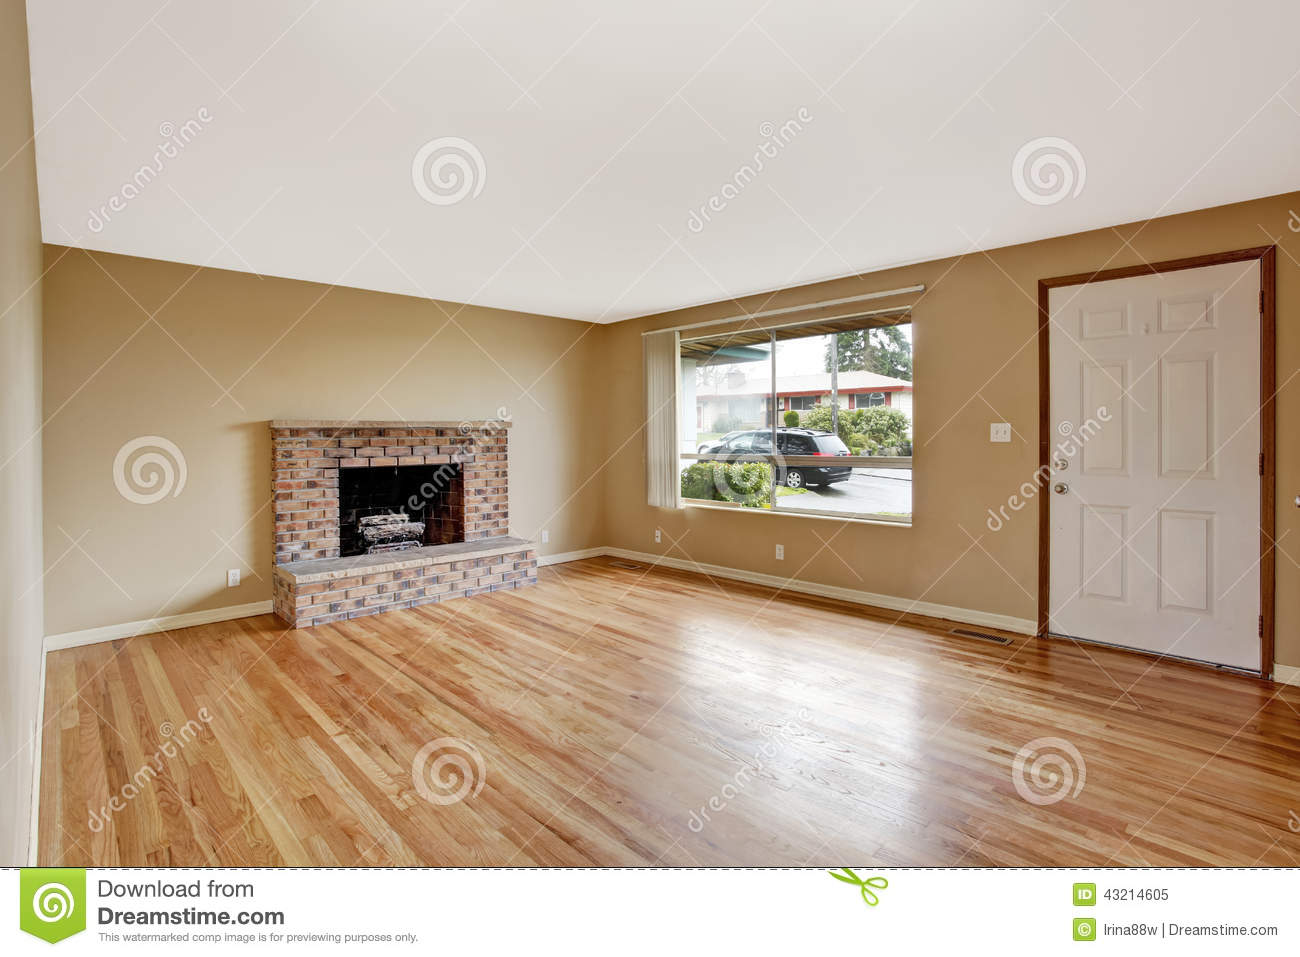 Brick Door Empty Entrance Fireplace House Interior Living Room